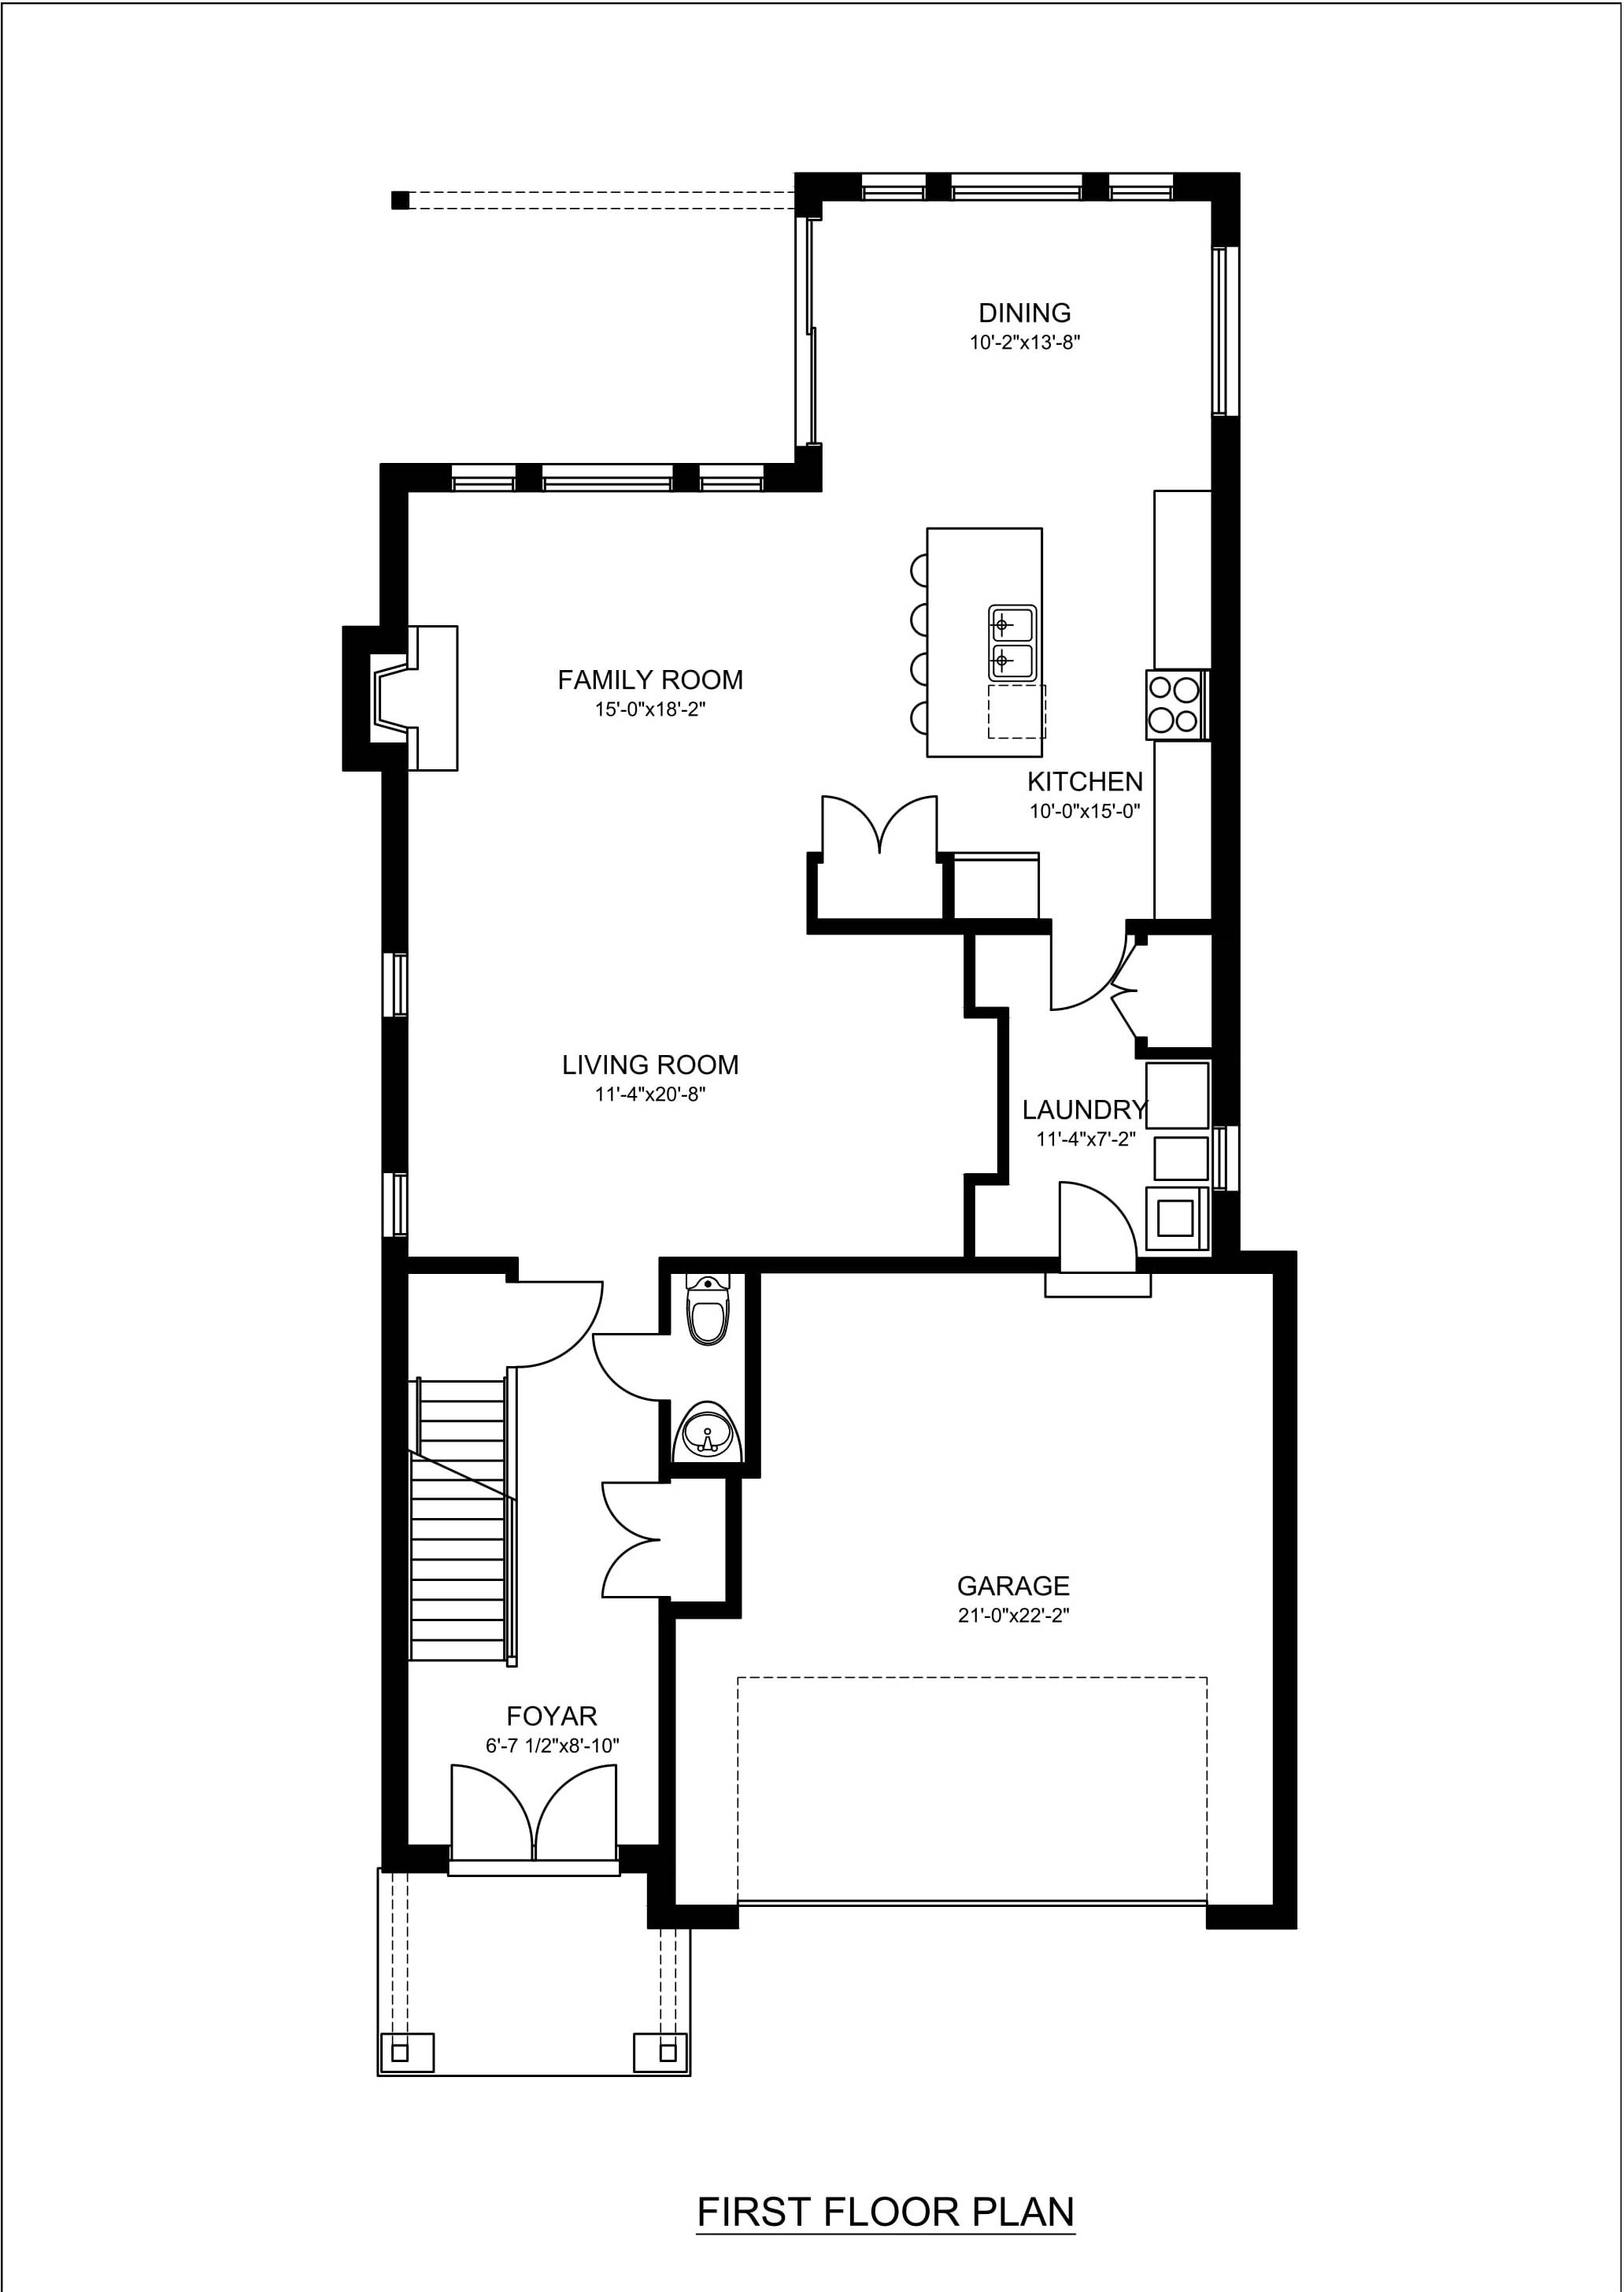 Real estate 2d floor plans design rendering samples for Sample house plans